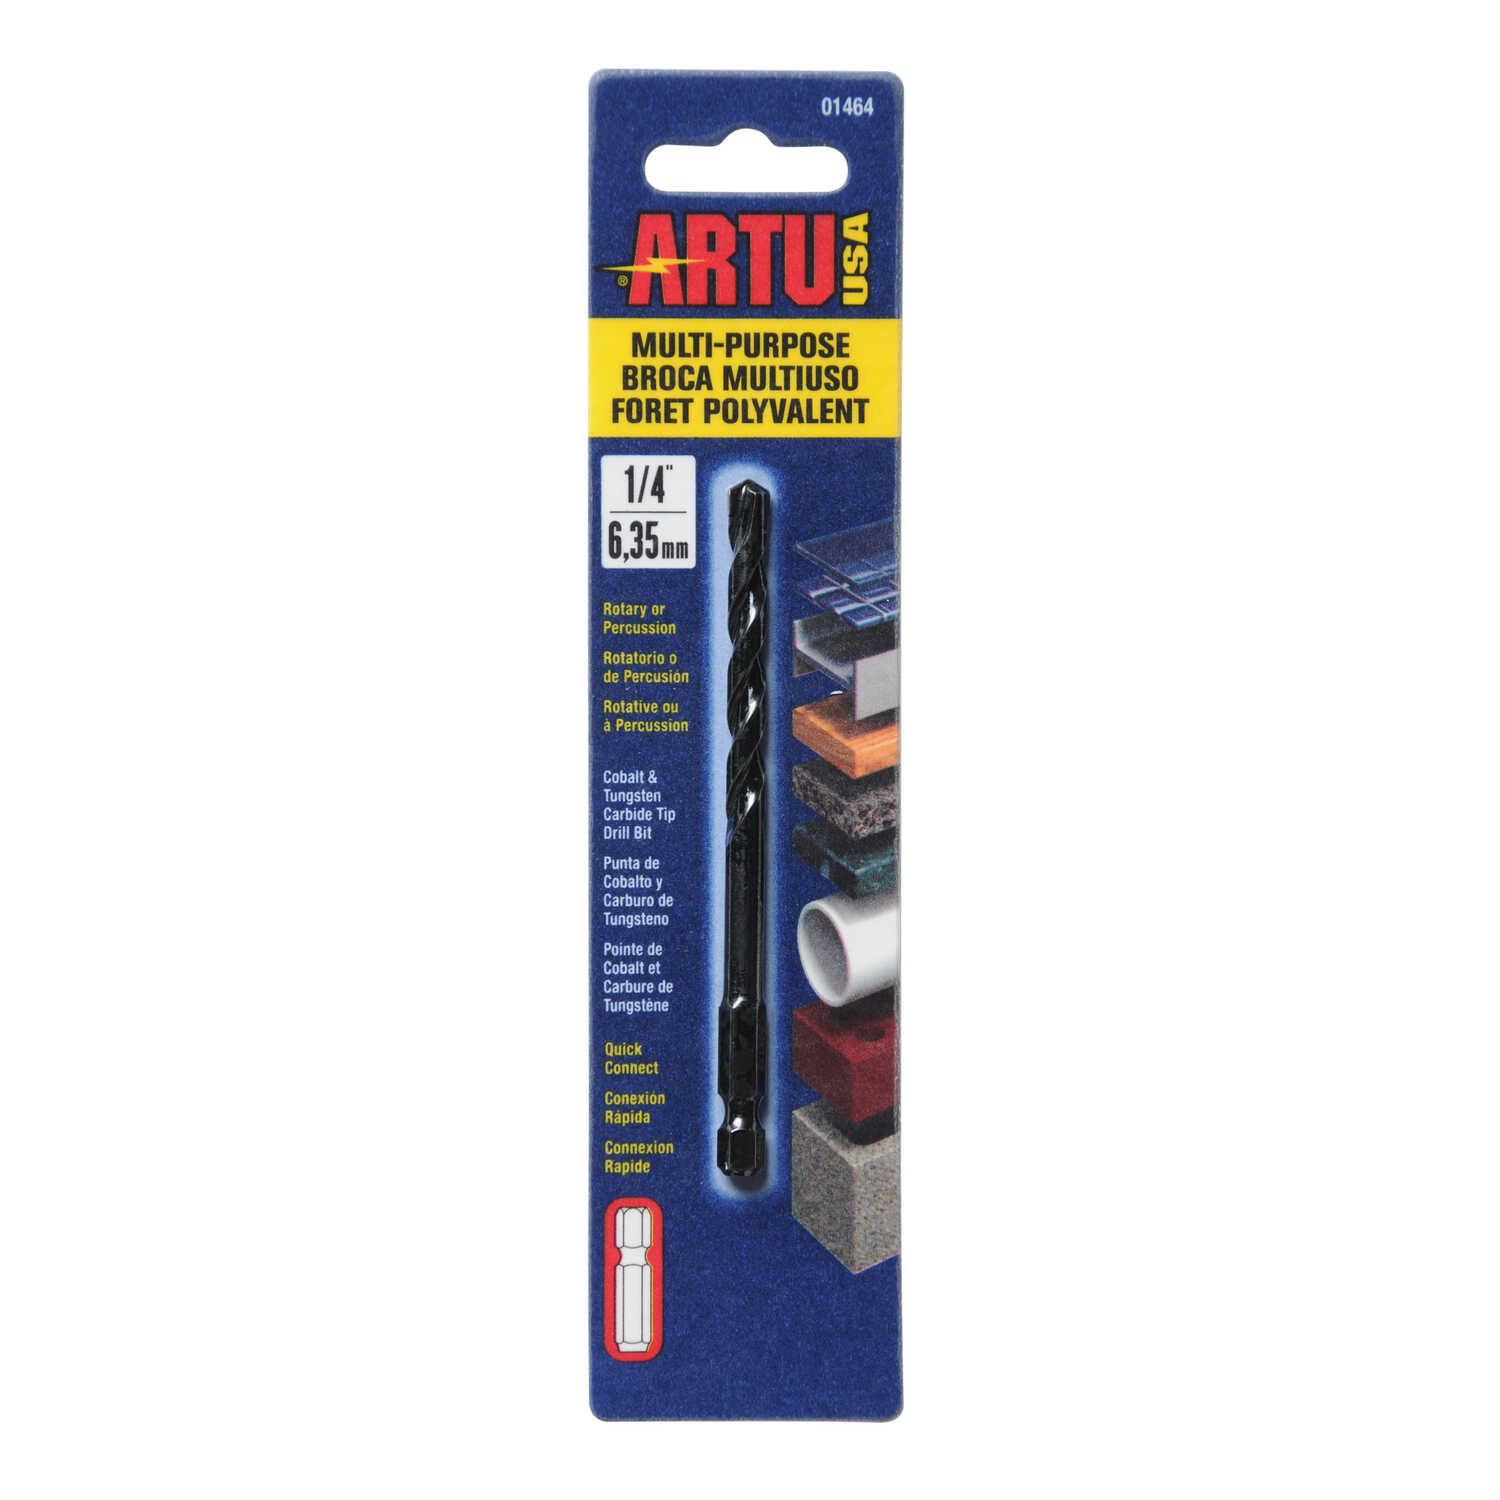 ARTU  1/4 in. Dia. x 4-1/8 in. L Carbide Tipped  Quick-Change Hex Shank  Quick-Connect Drill Bit  1